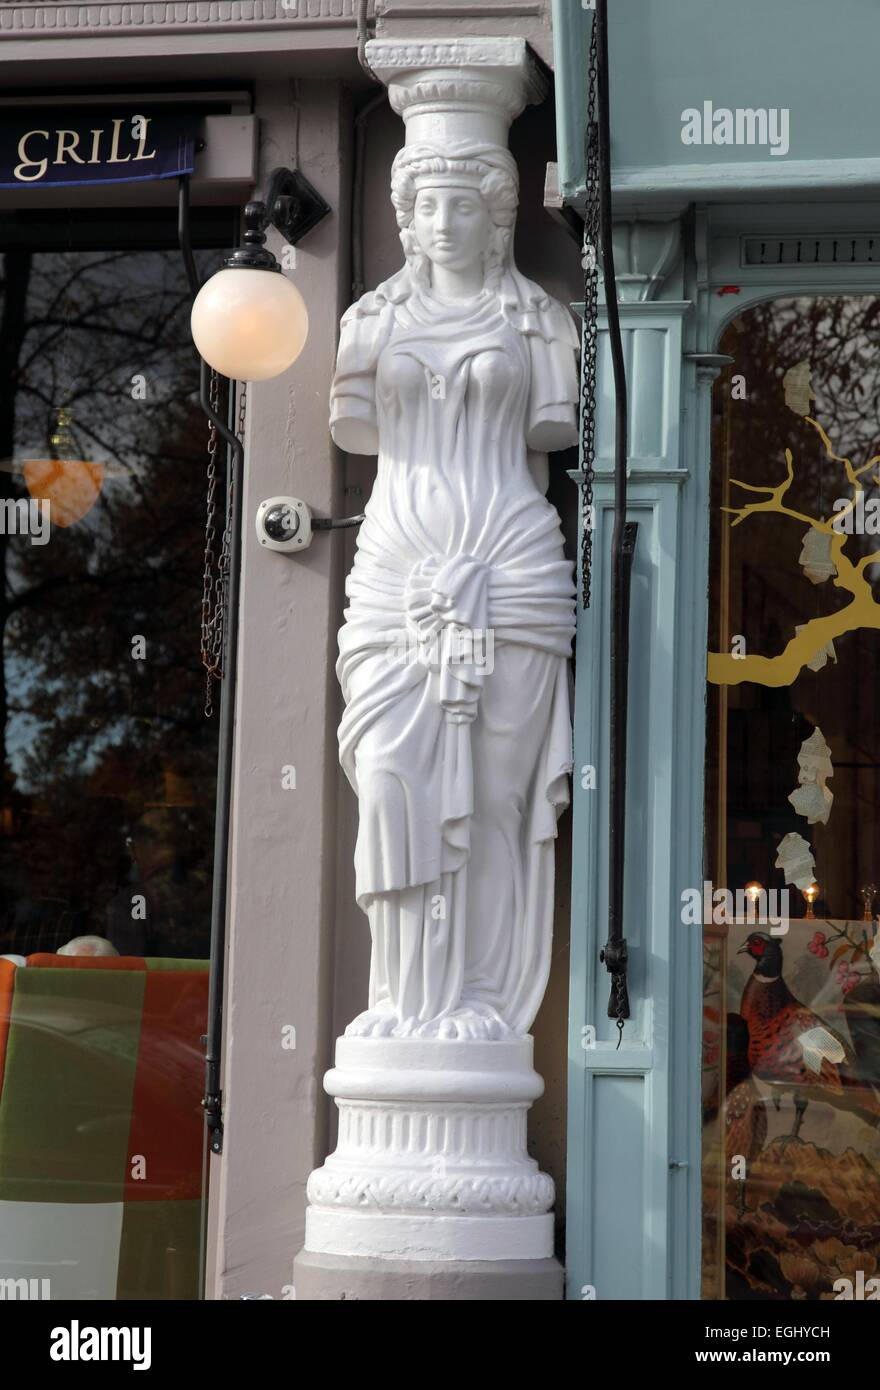 Caryatid statue outside a shop in Montpellier, Cheltenham - Stock Image